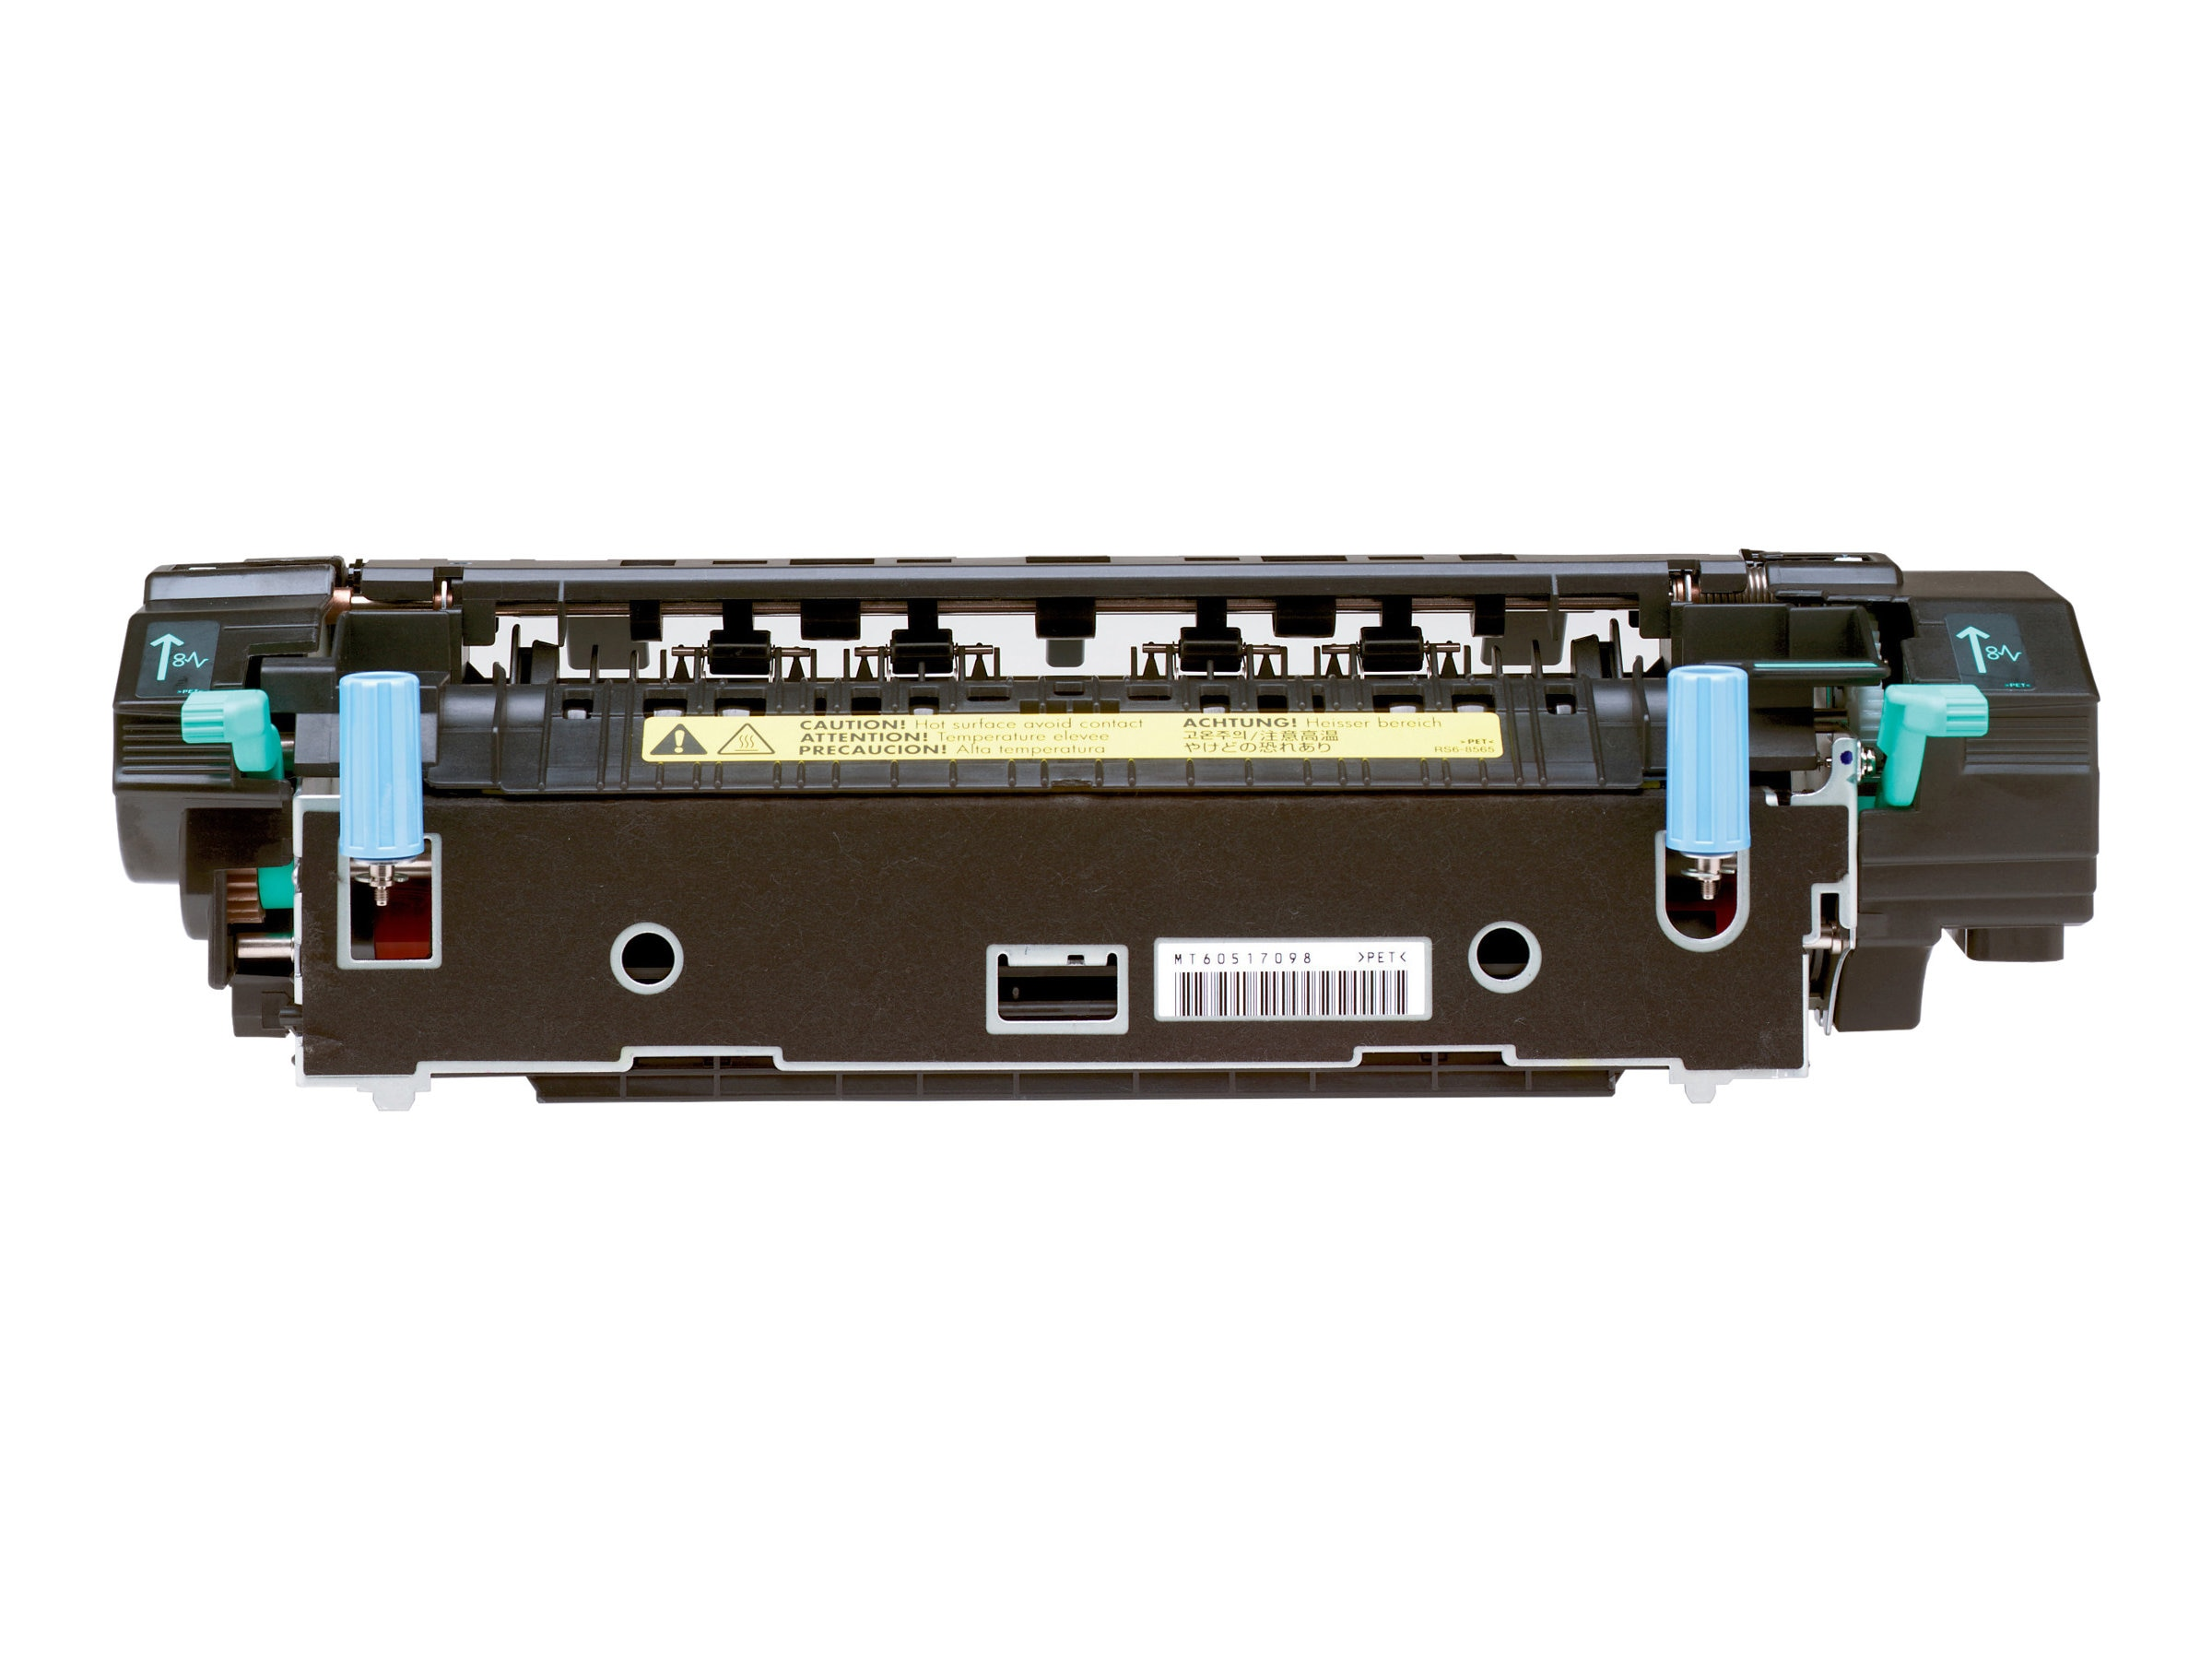 HP Color LaserJet 220V Fuser Kit for HP Color LaserJet 4700 Printer Series, Q7503A, 6588634, Printer Accessories